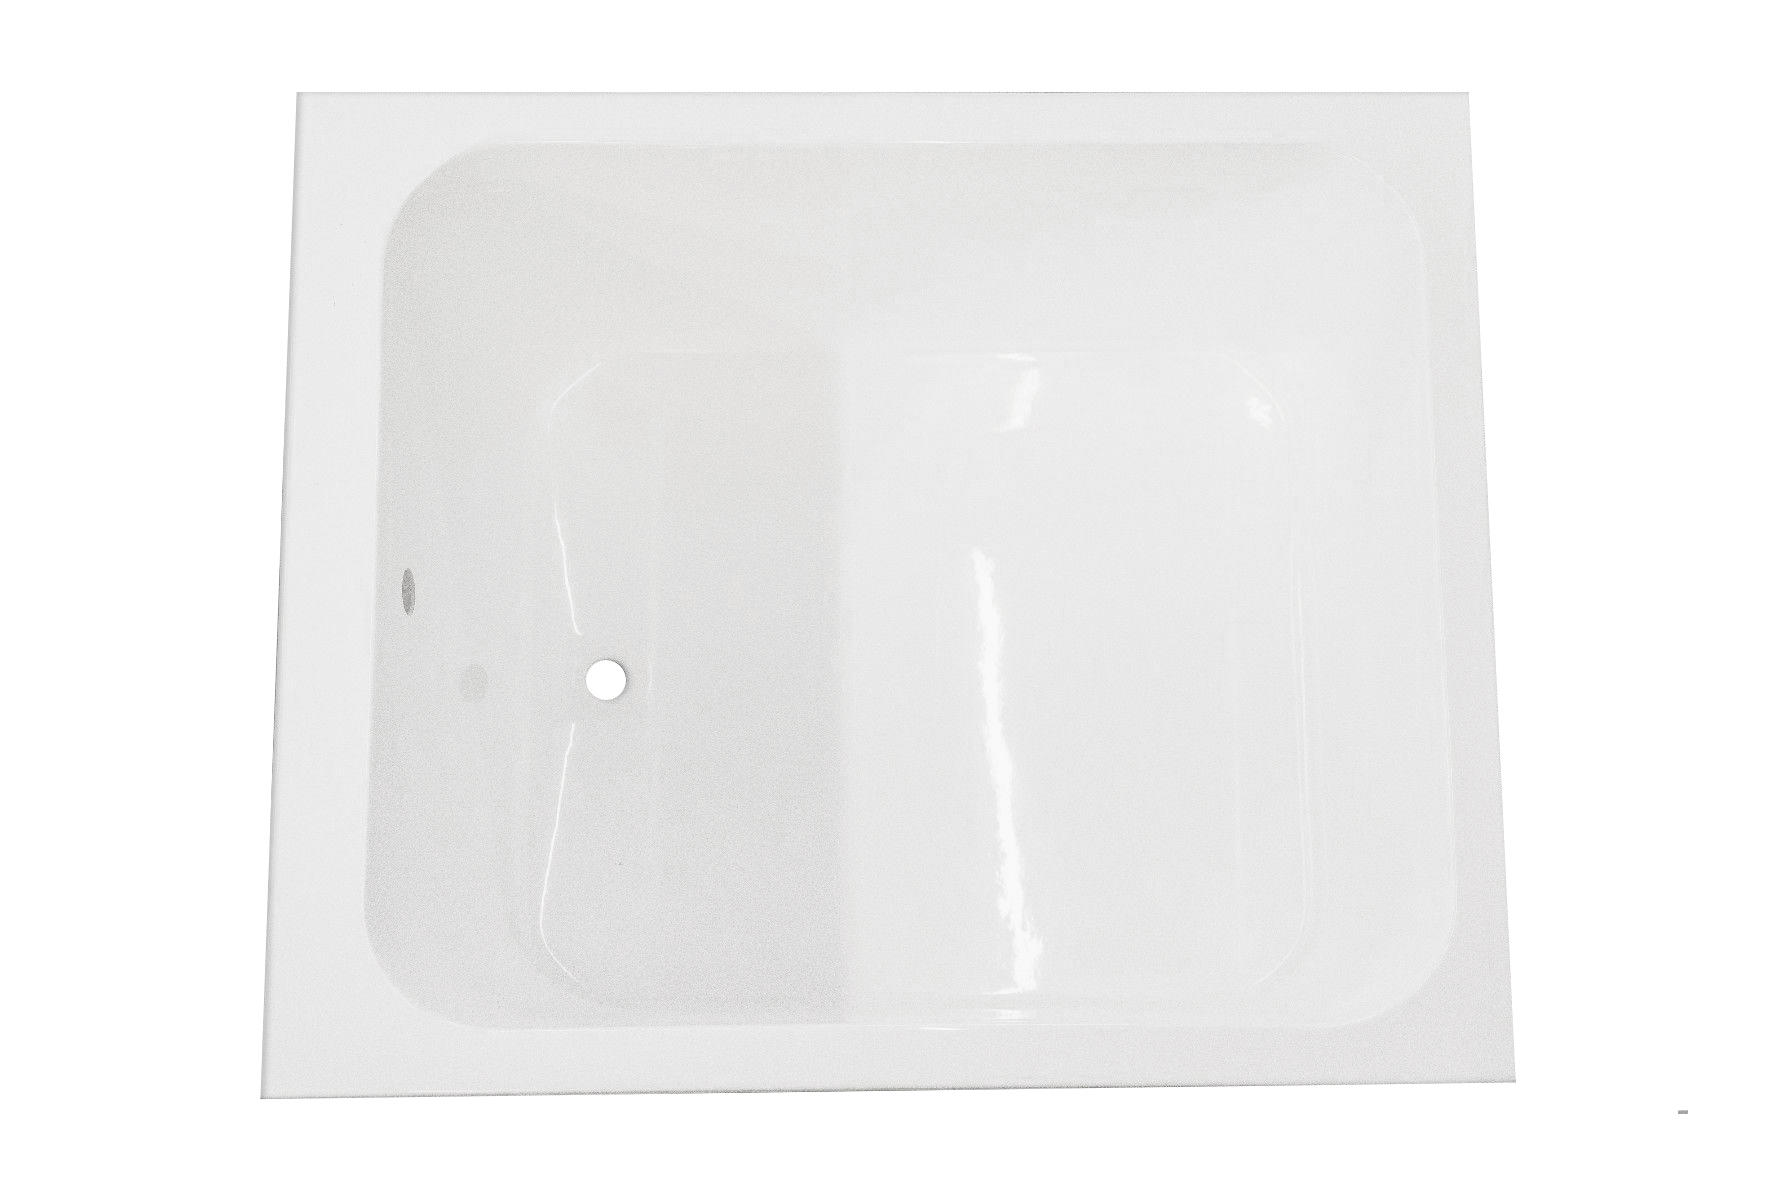 Oriental Deep Soaking Tub 1200 x 1000 mm